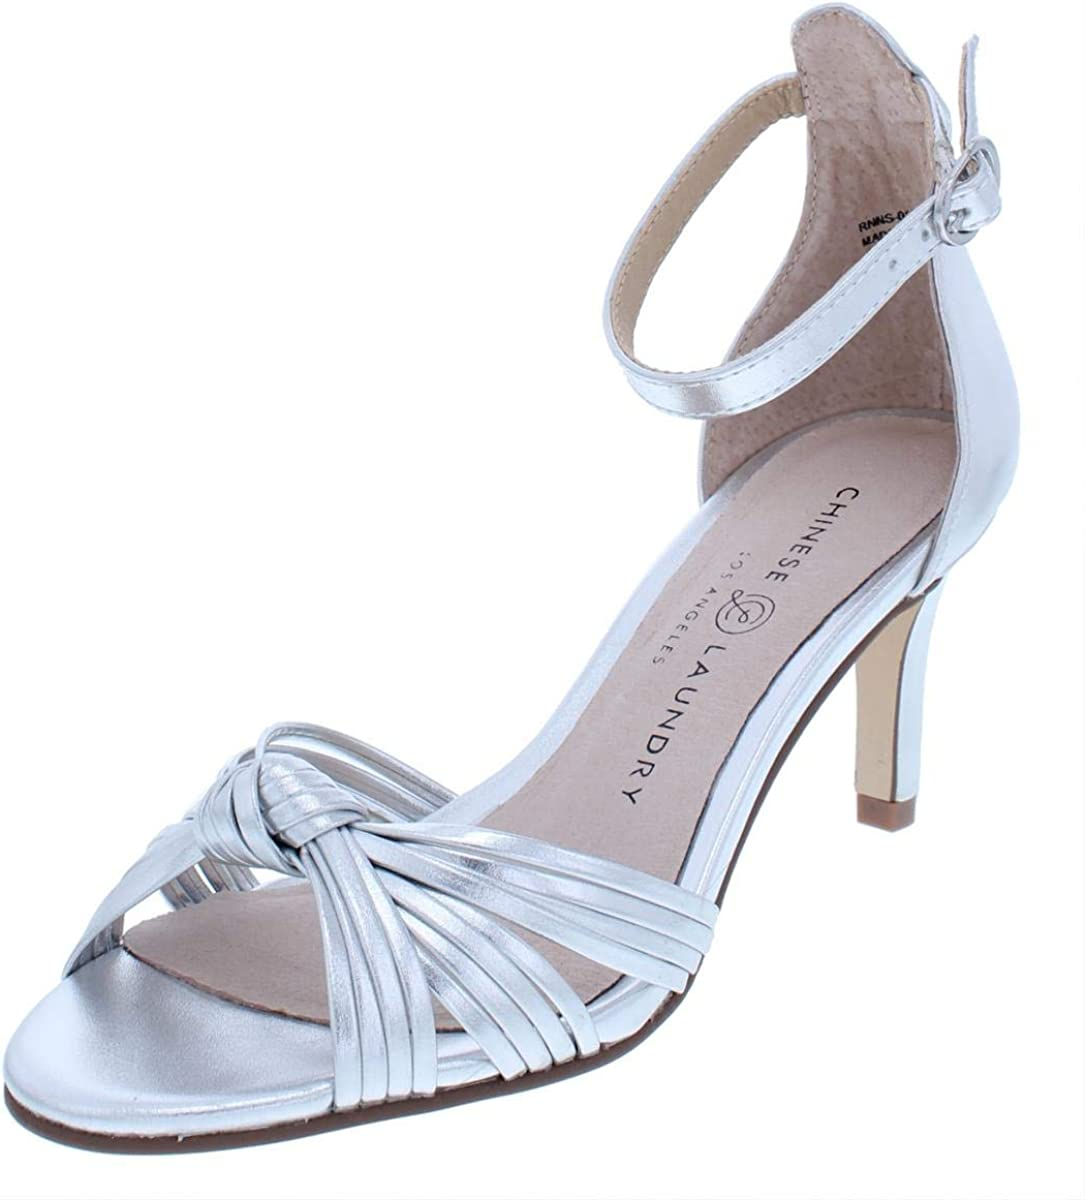 Chinese Laundry Womens Robbie Open Toe Casual Ankle Strap Sandals